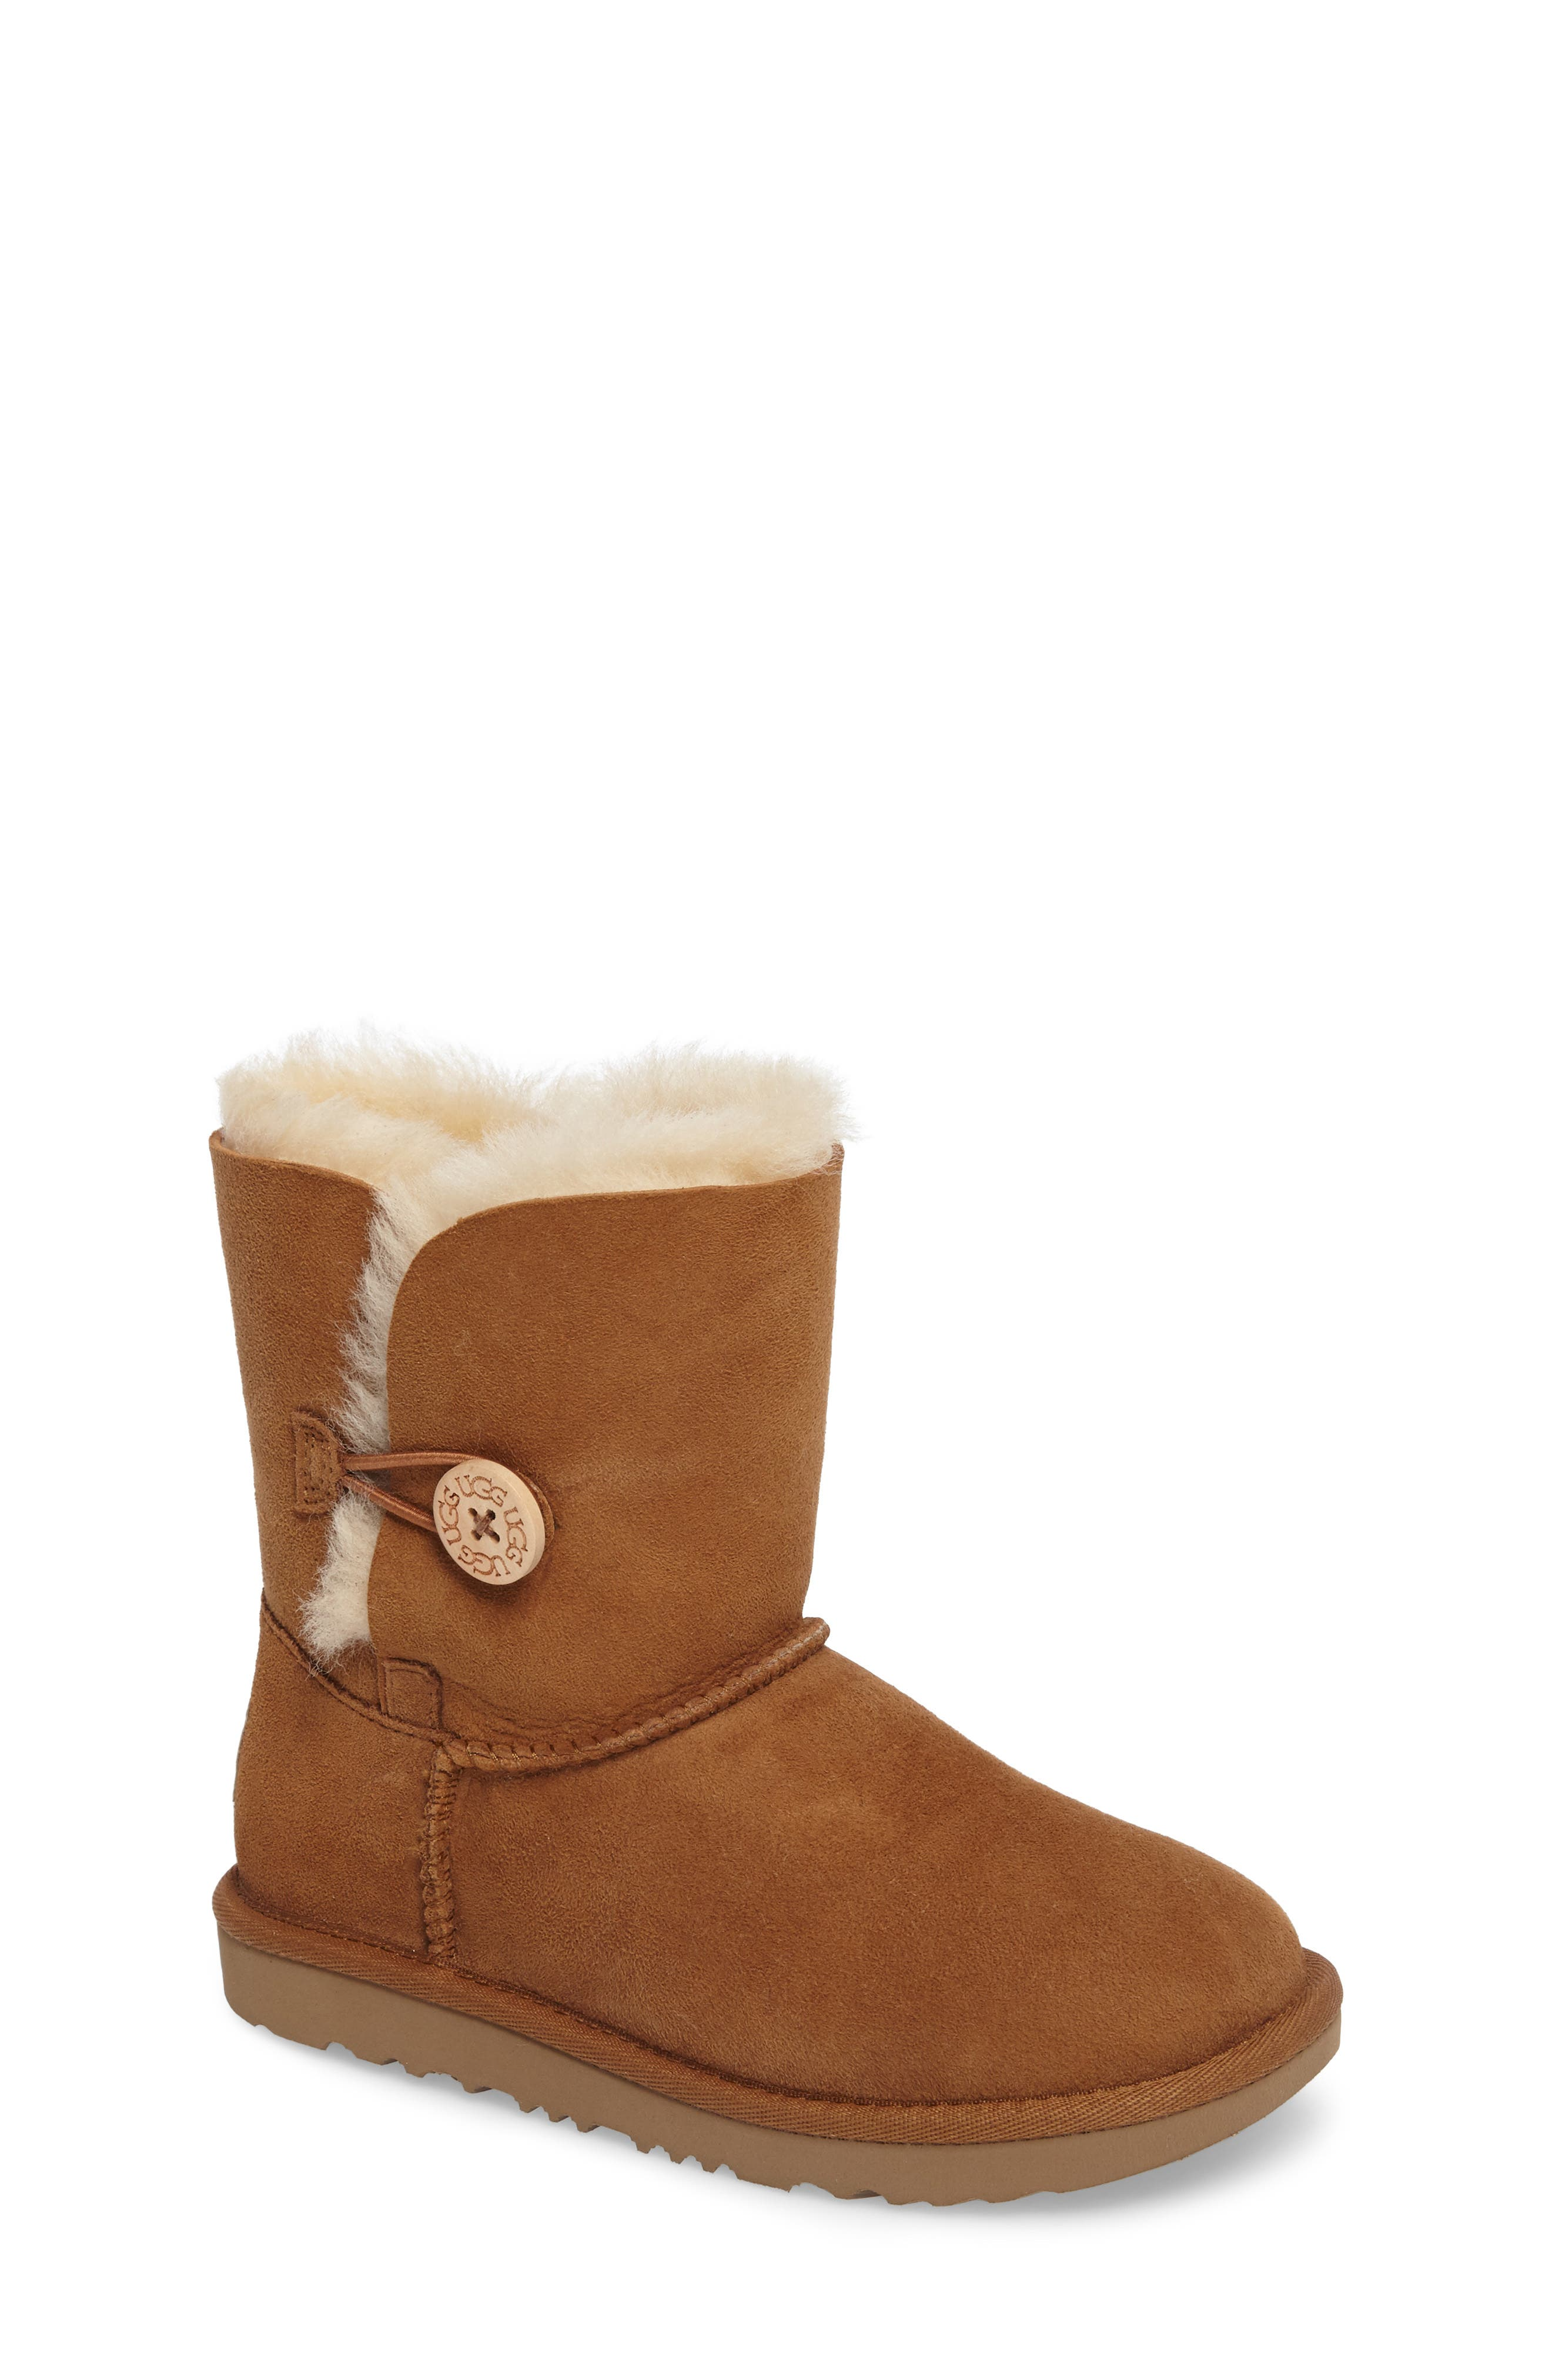 Main Image - UGG® Bailey Button II Water Resistant Genuine Shearling Boot (Walker, Toddler, Little Kid & Big Kid)